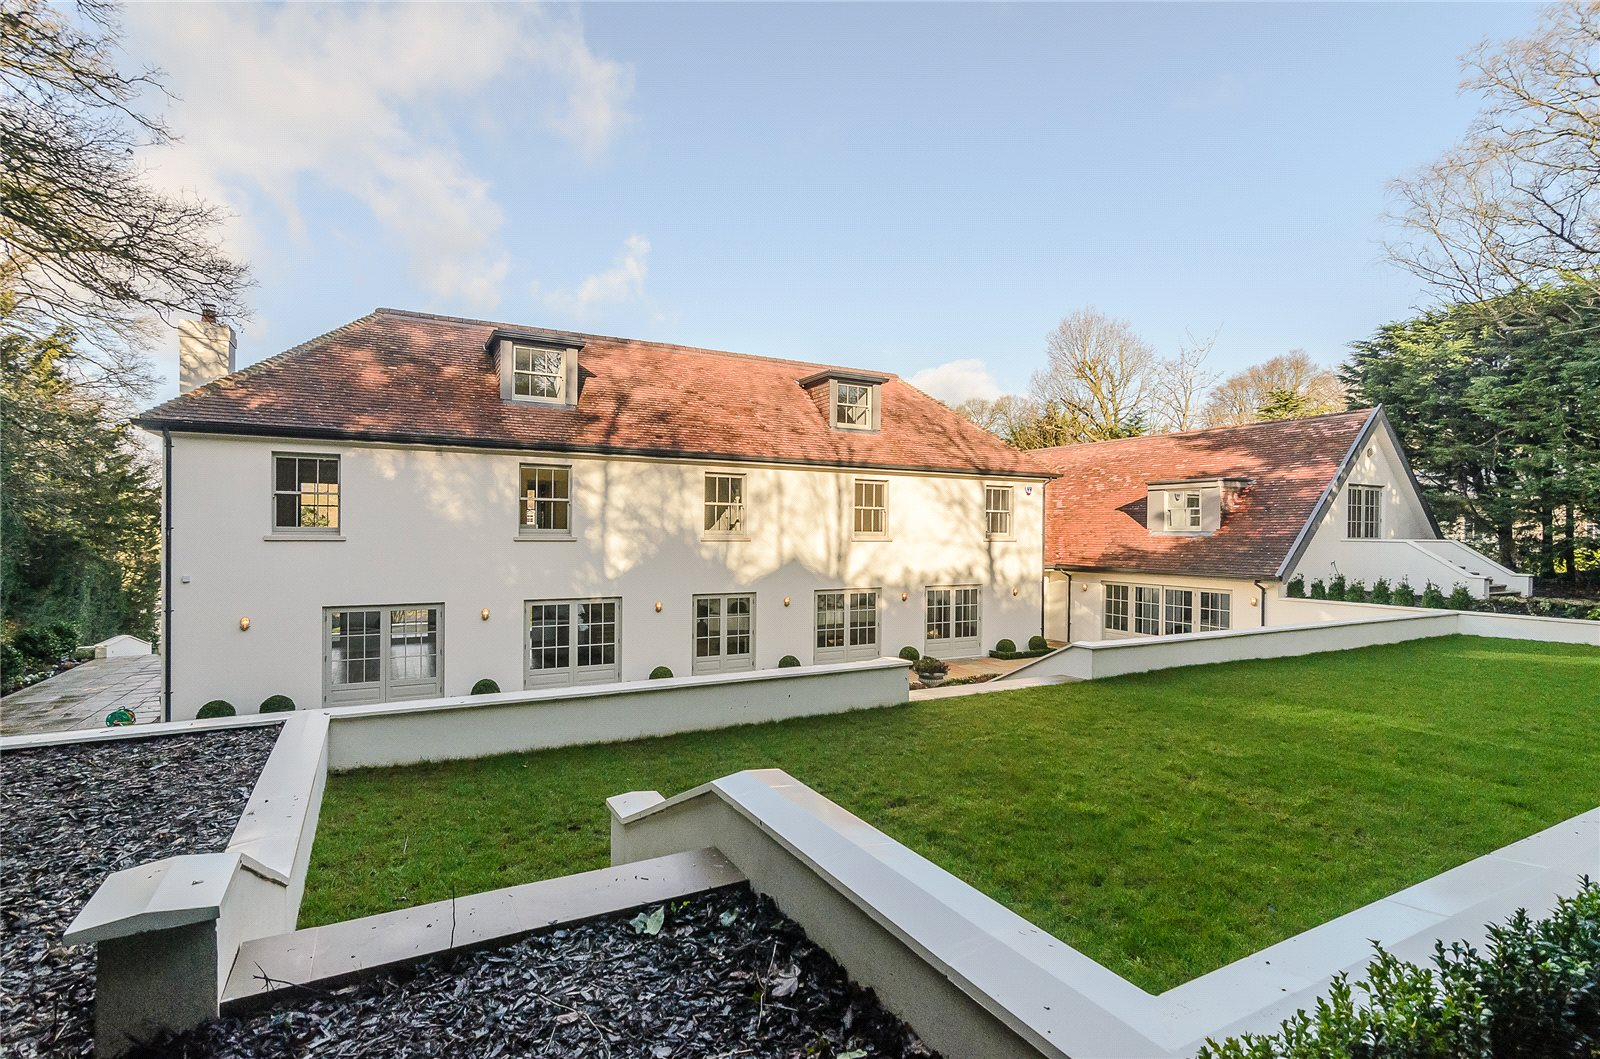 Additional photo for property listing at Camp Road, Gerrards Cross, Buckinghamshire, SL9 Gerrards Cross, England